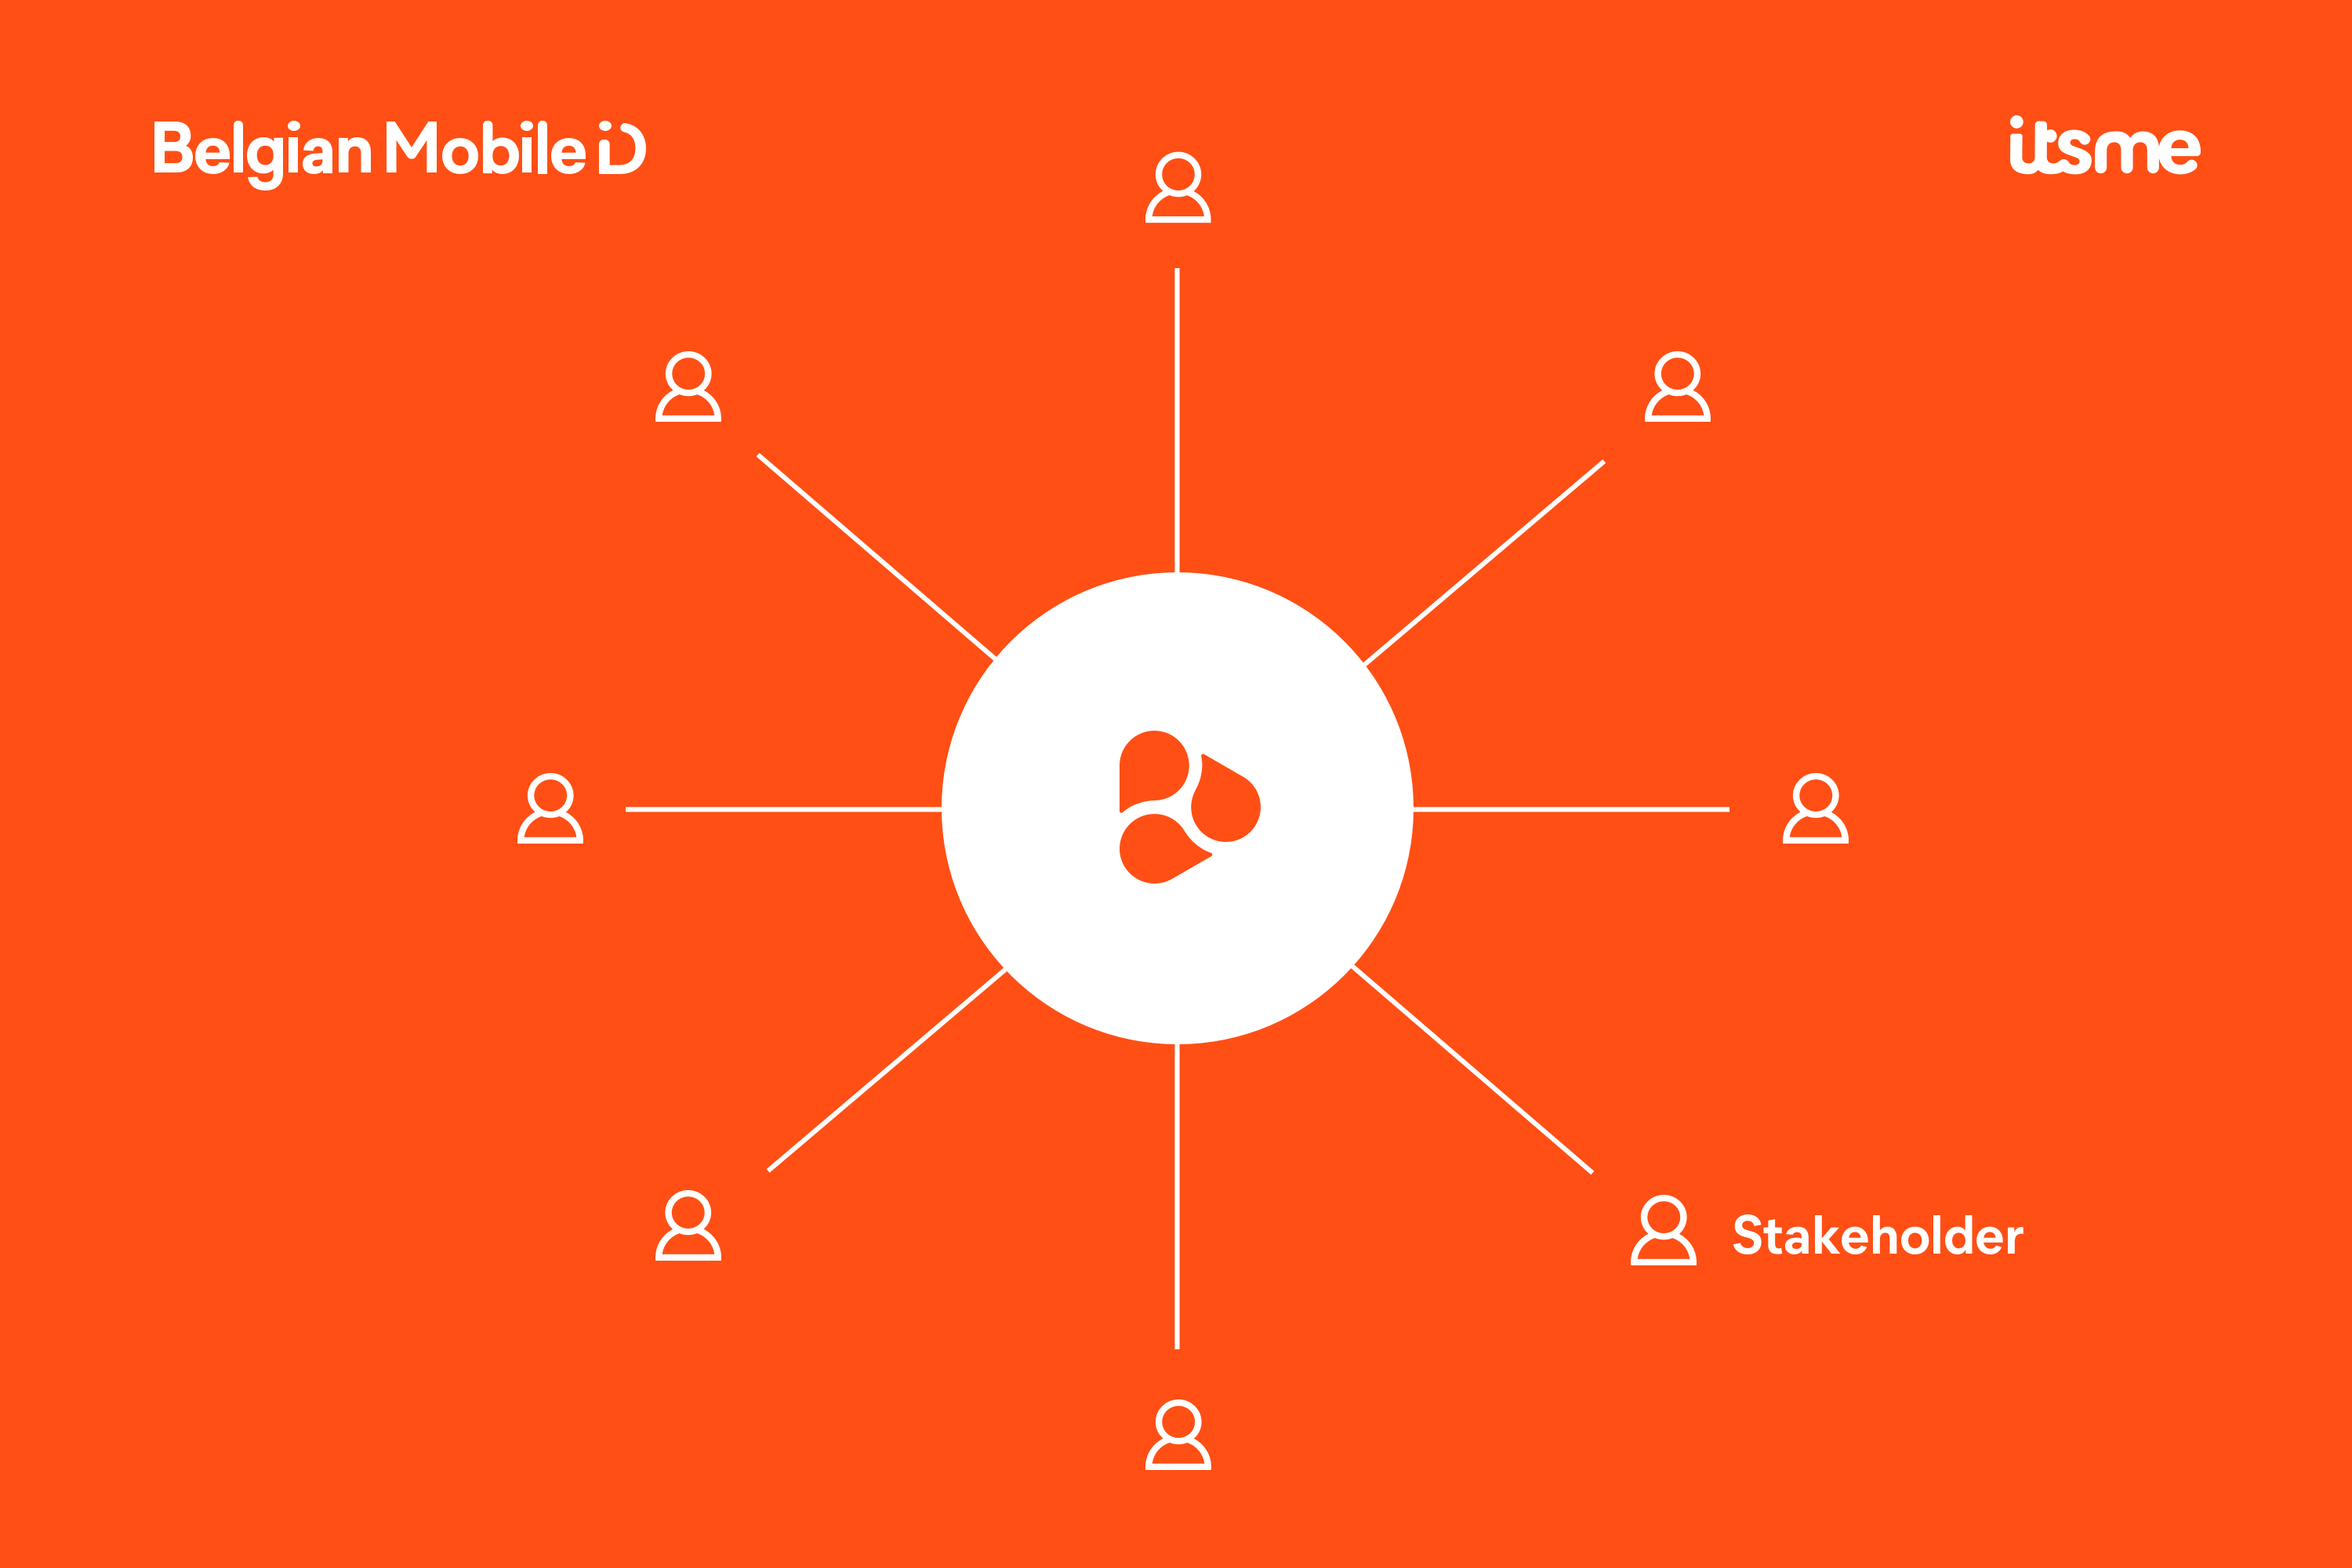 belgian-mobile-id-stakeholders-orange